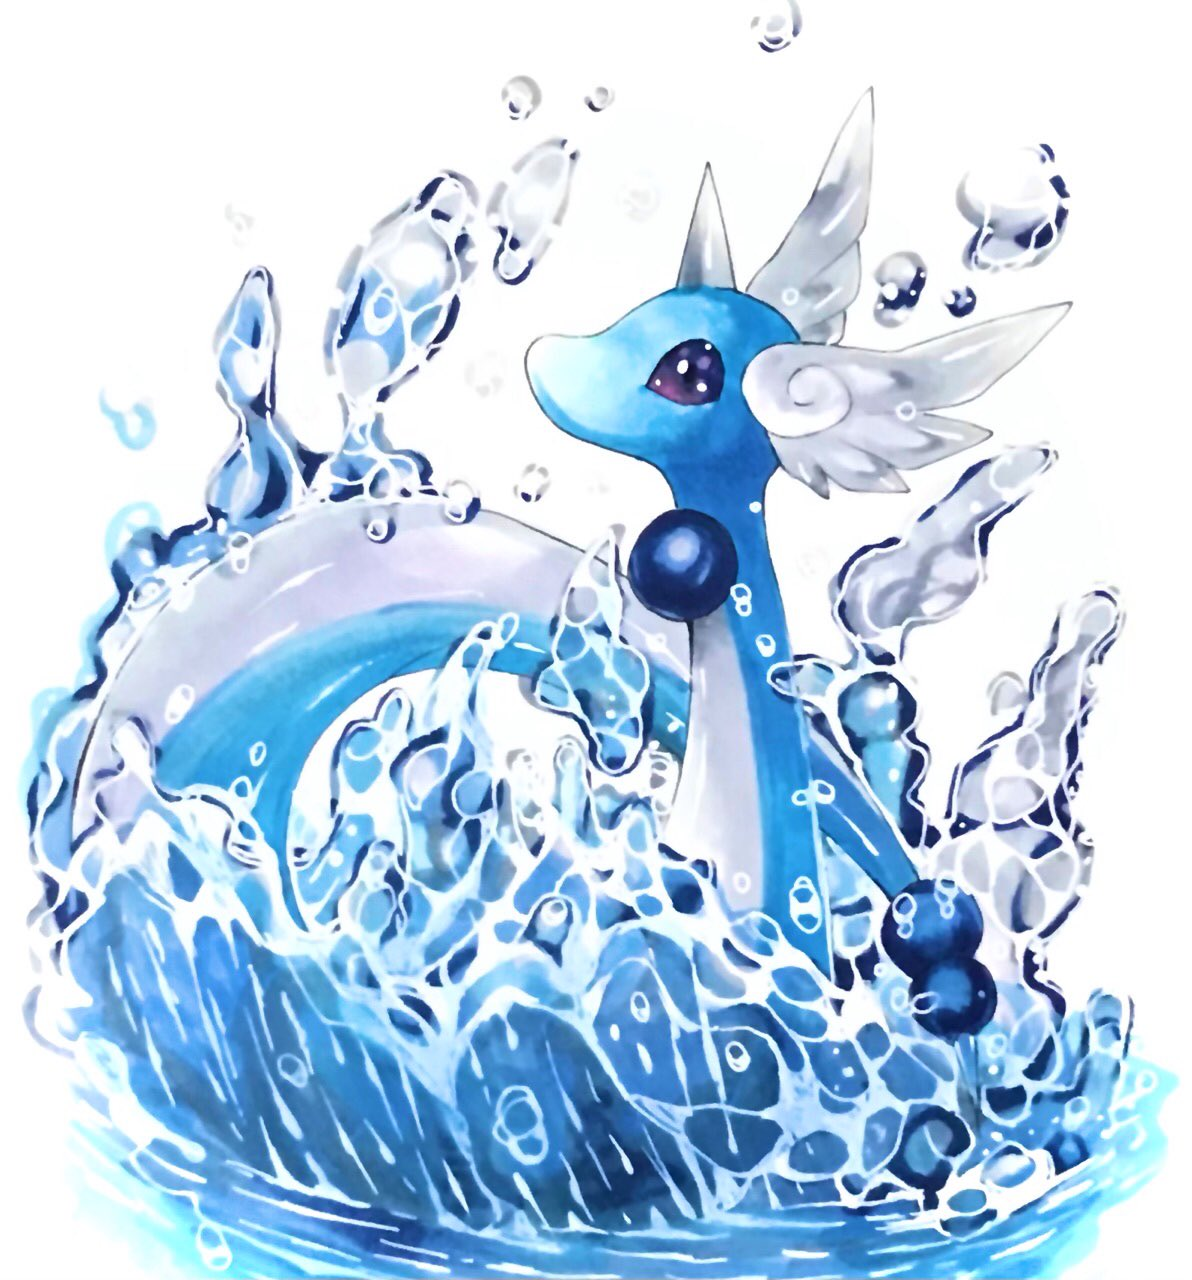 animal_focus blue_theme commentary dragonair gen_1_pokemon head_wings highres marker_(medium) mofuo no_humans partially_submerged pokemon pokemon_(creature) simple_background solo splashing traditional_media violet_eyes water white_background